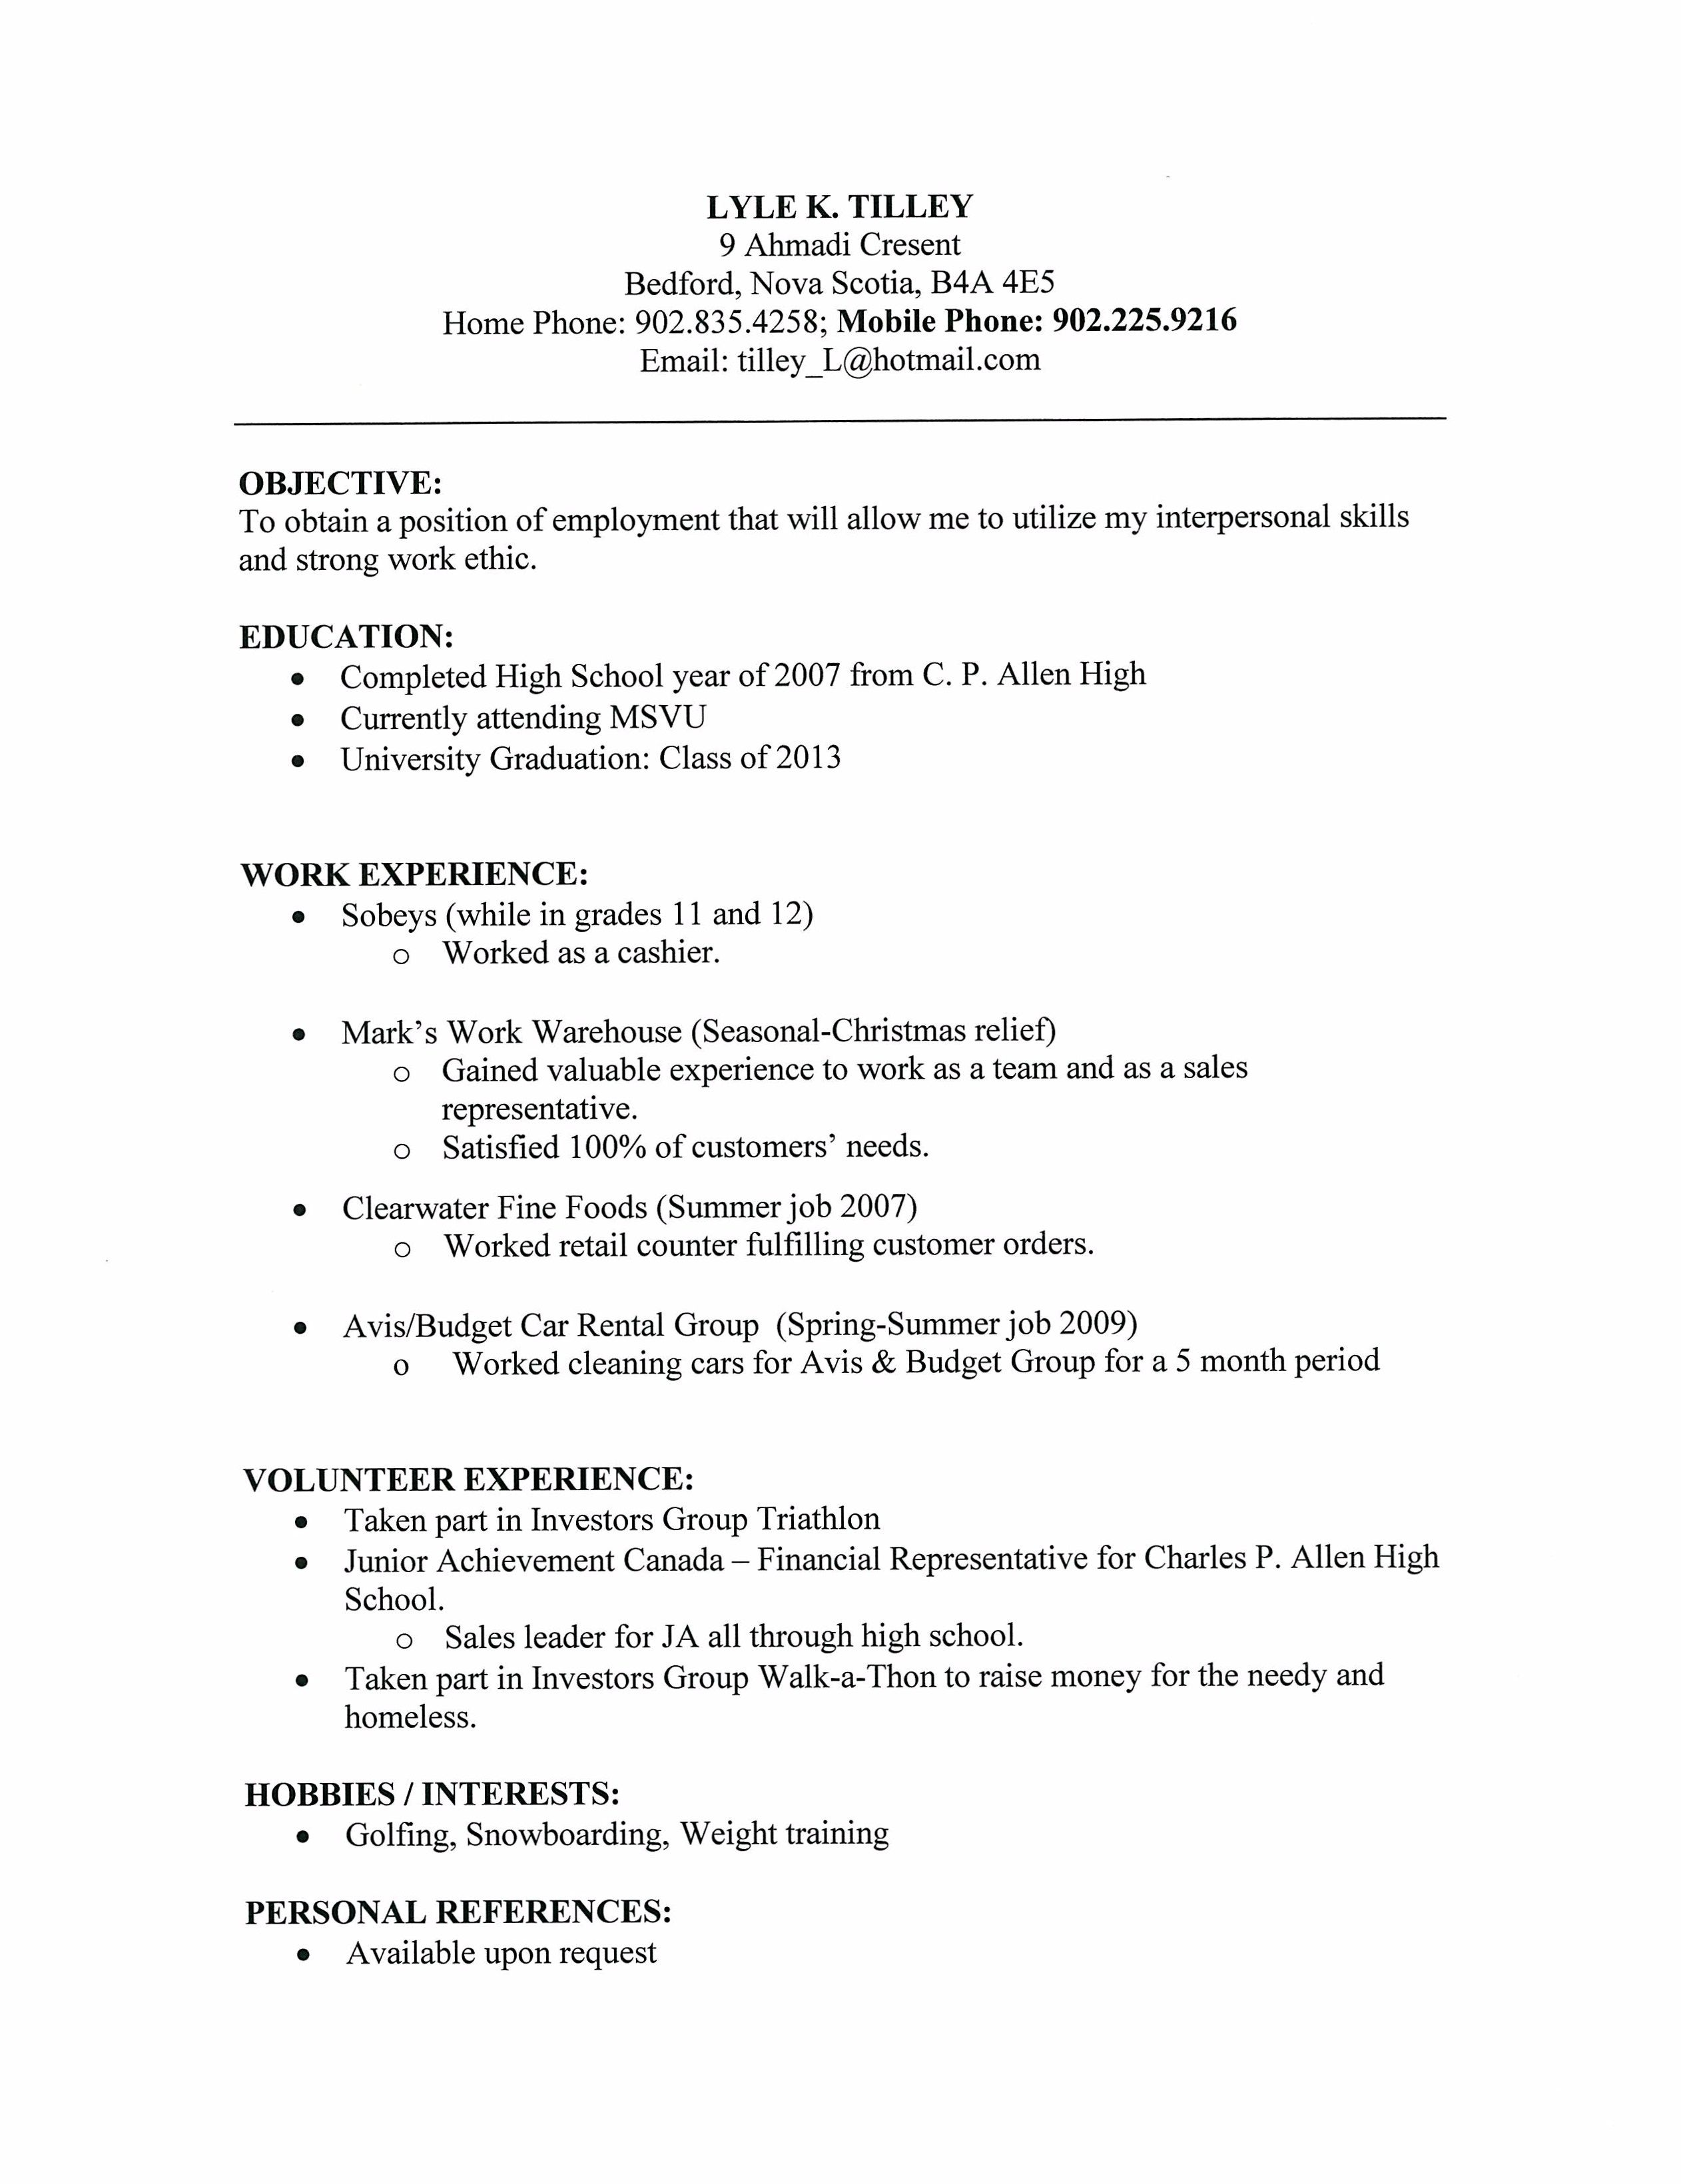 resume cover letter template word cover letter for functional resume word template cover letter template - What Is A Cover Letter Resume